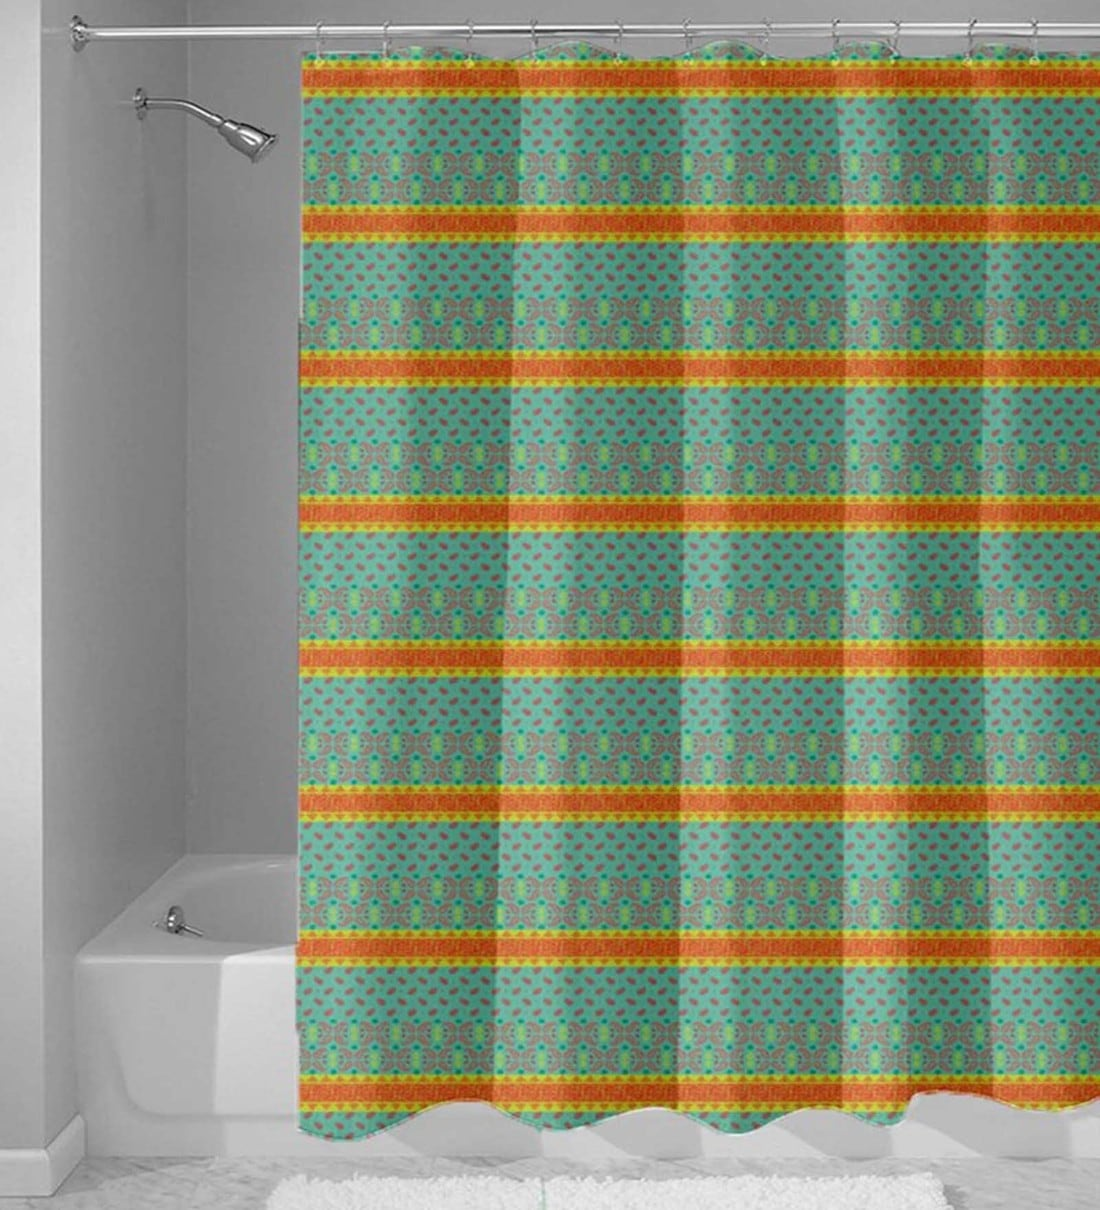 Buy Green Abstract Pattern Nylon Shower Curtain Length 84 Width 48 Inches By Haus And Sie Online Shower Curtains Shower Curtains Furnishings Pepperfry Product